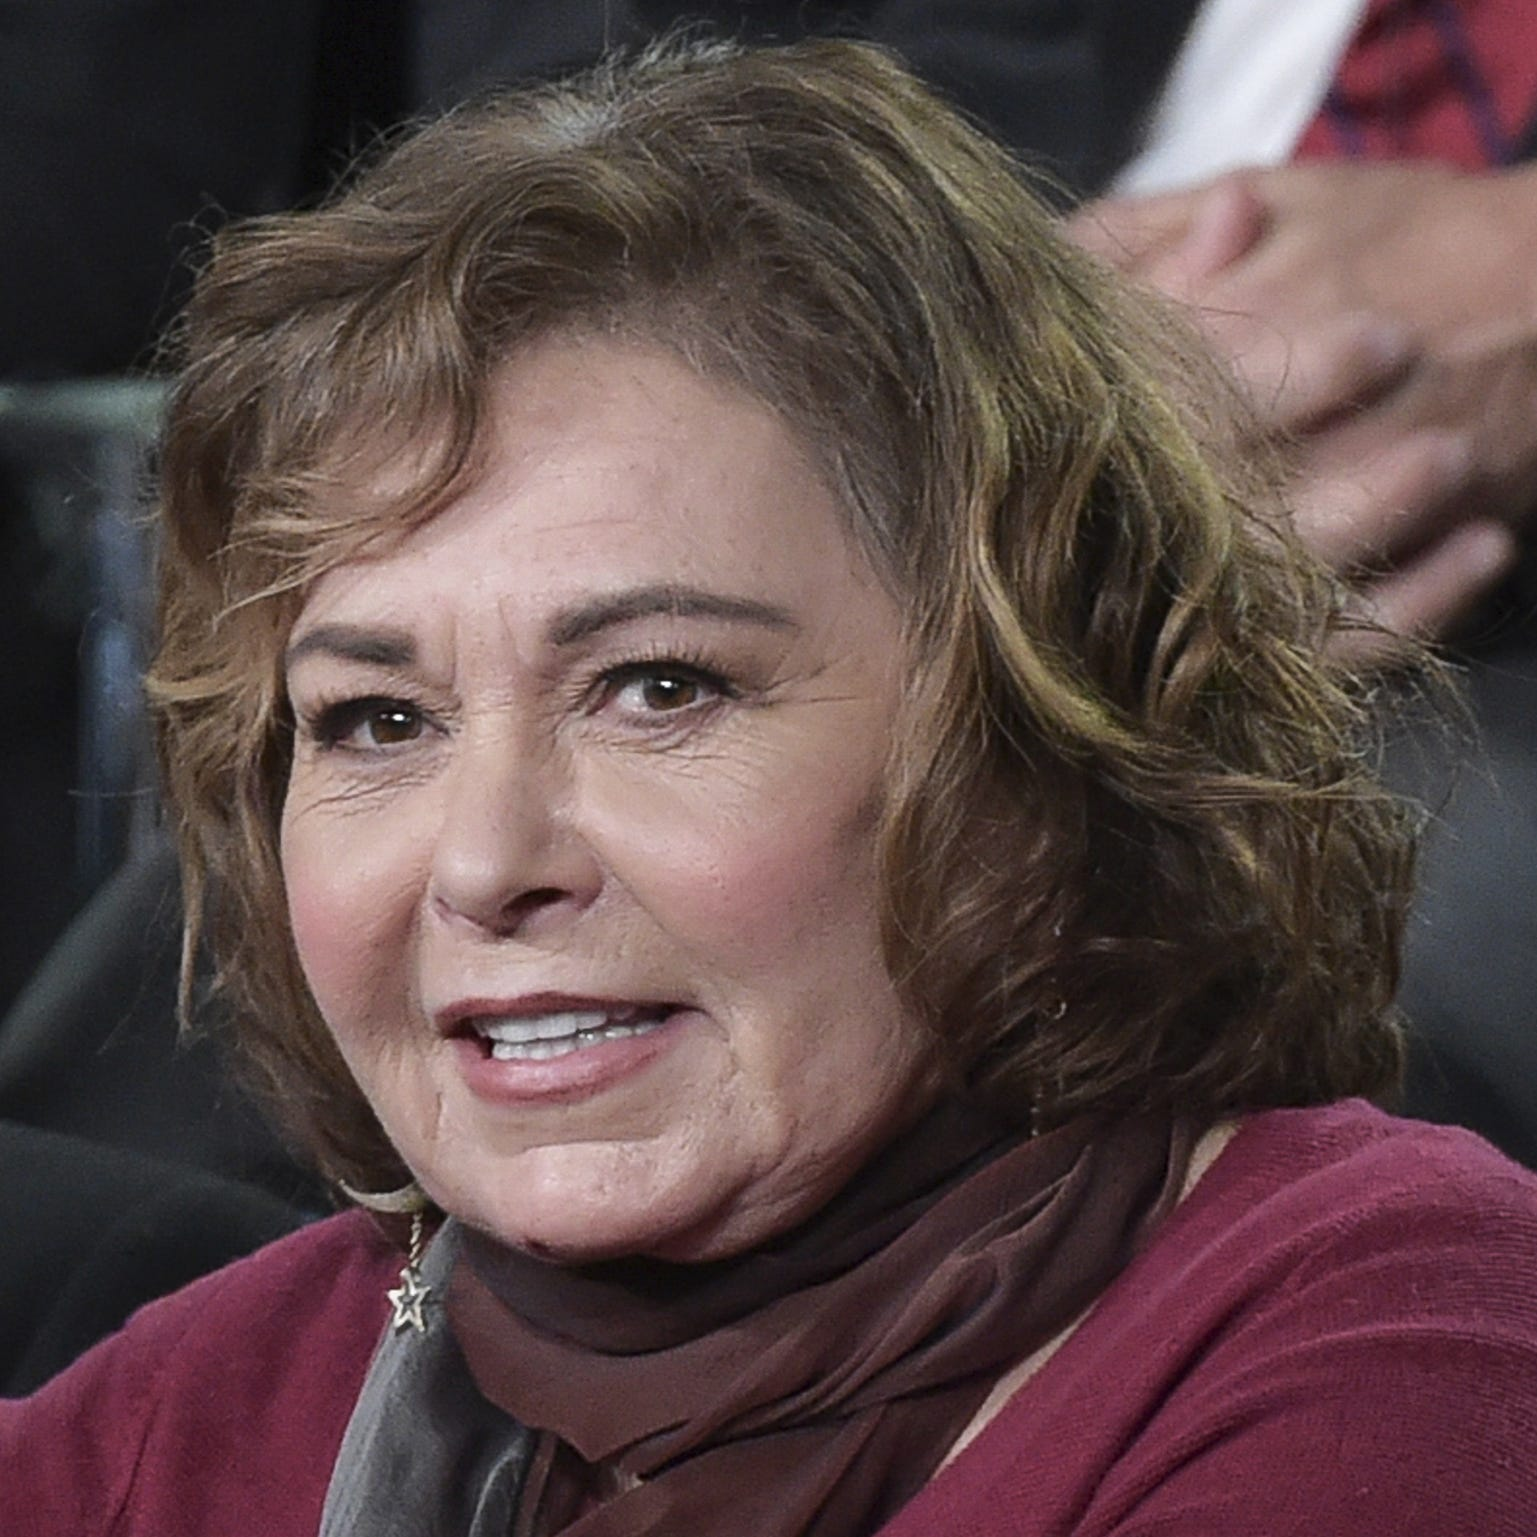 Roseanne spinoff: will an opioid overdose hit The Conners?